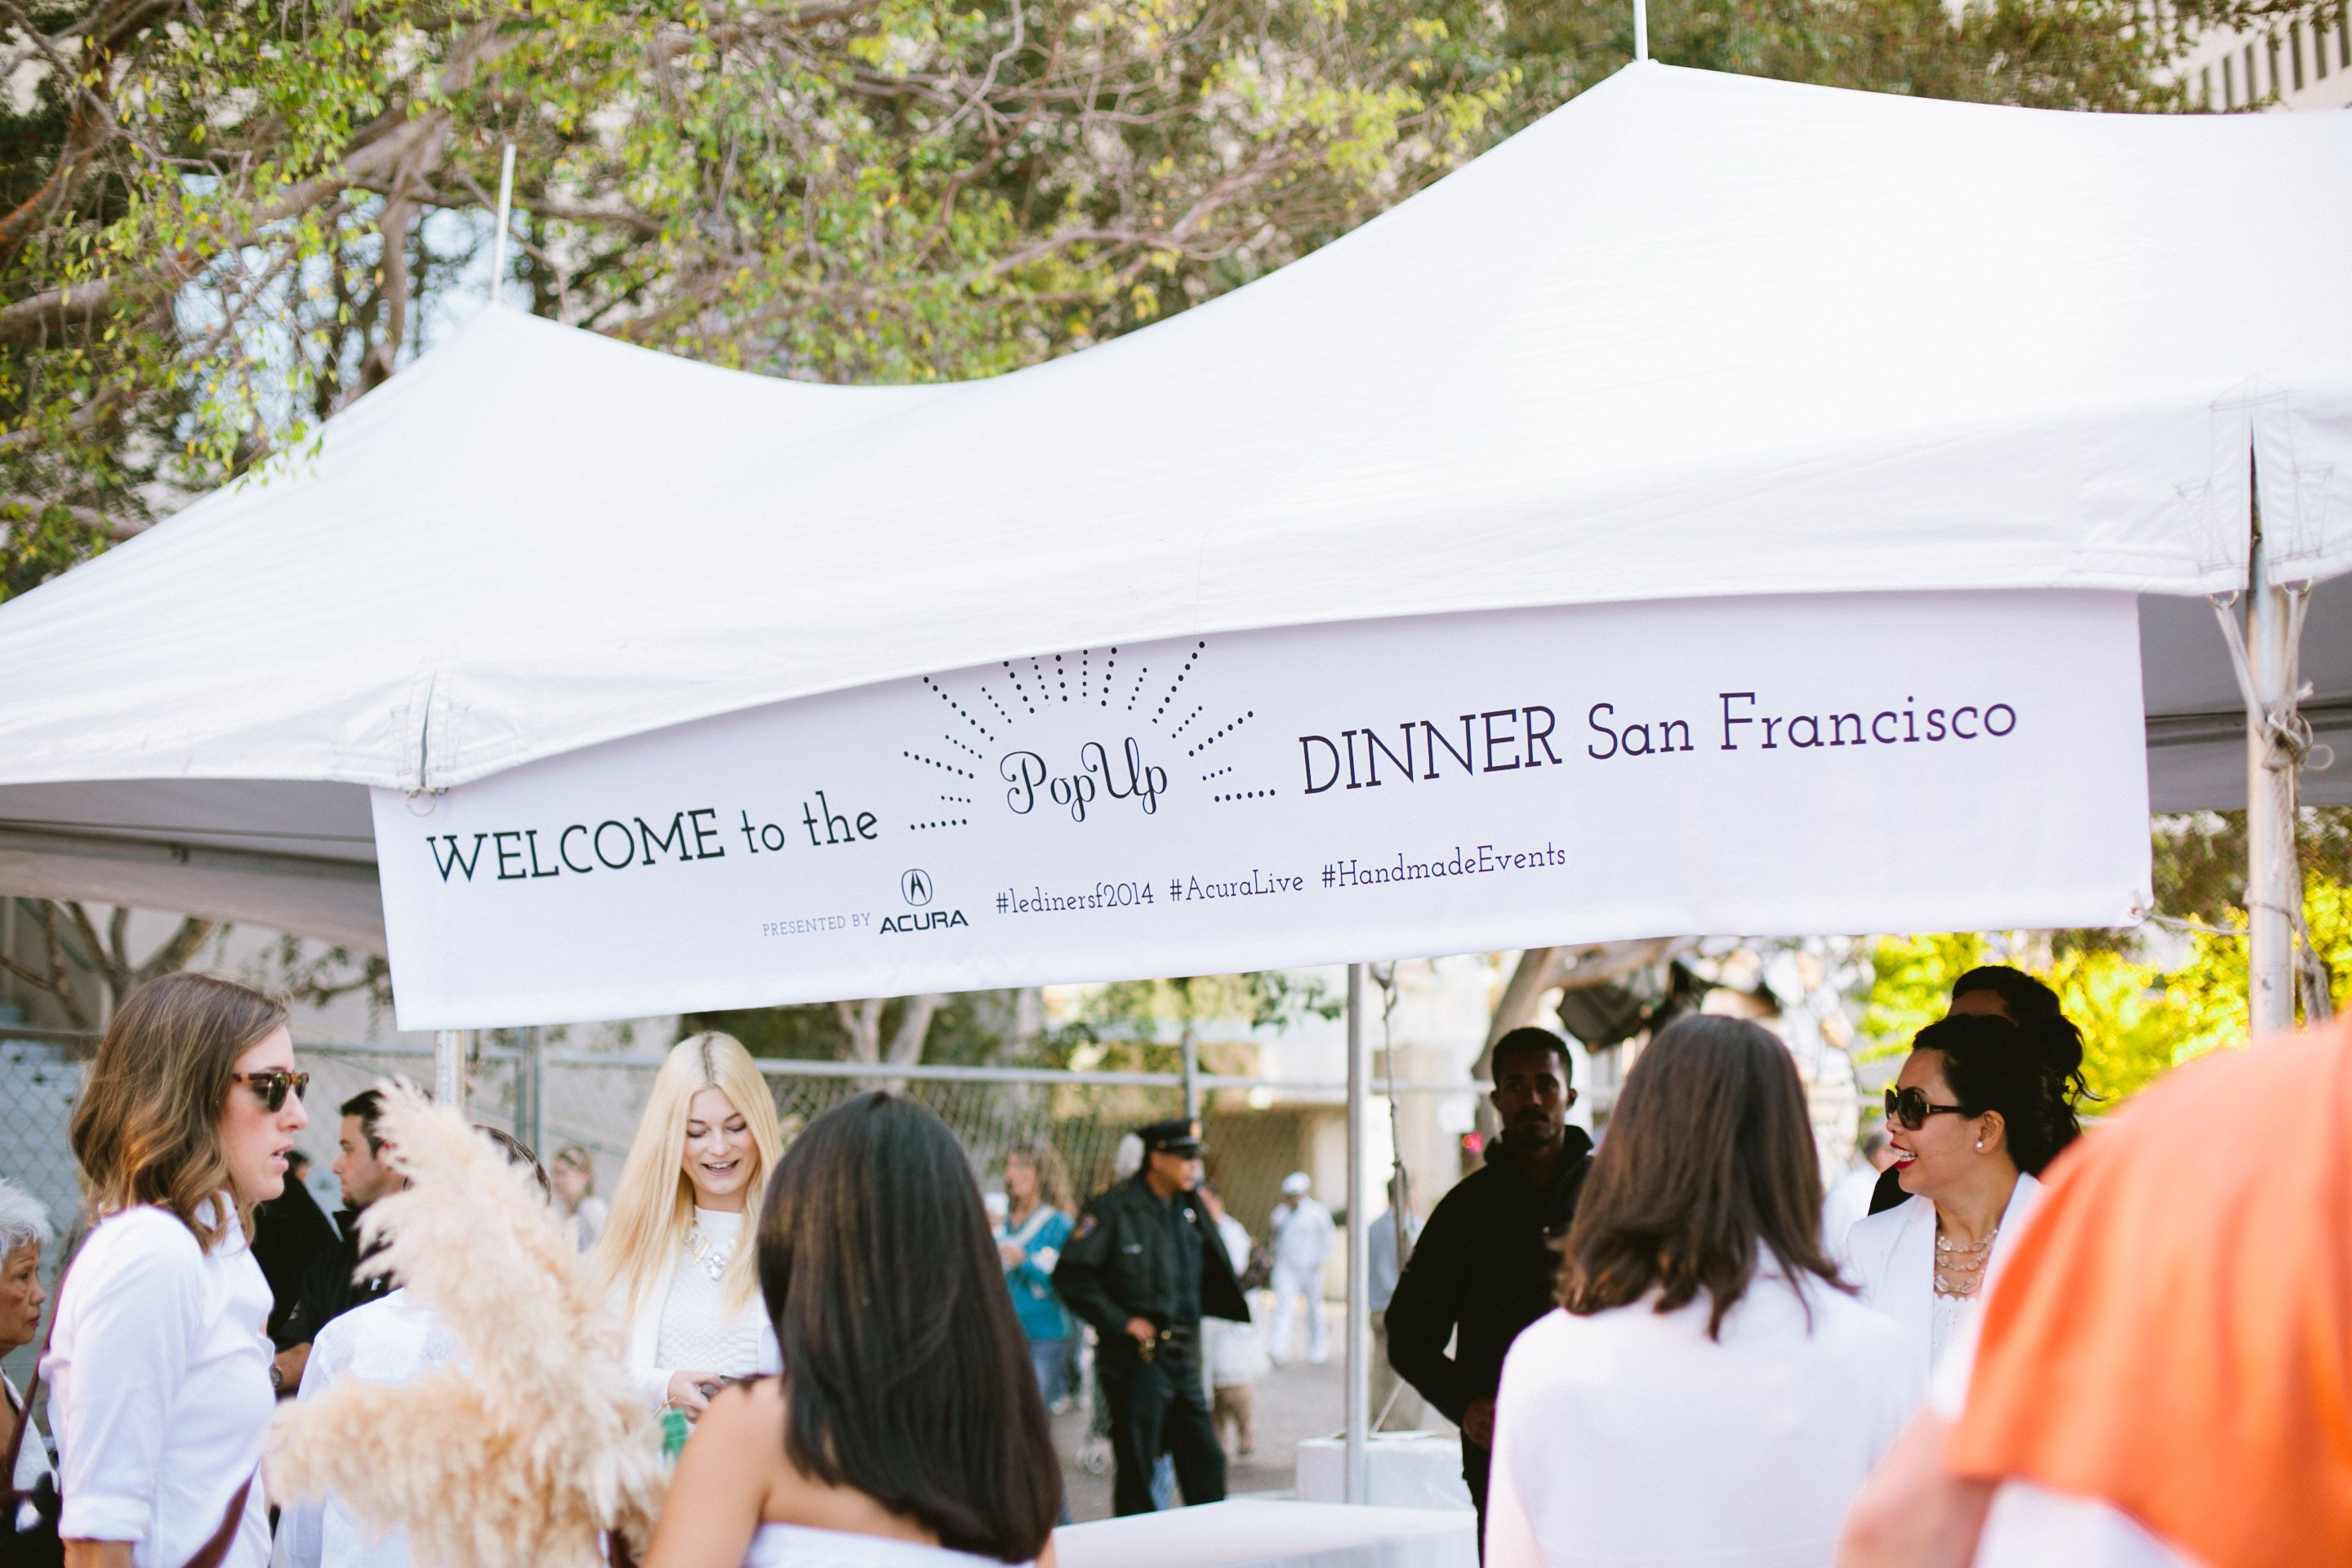 Welcome to Le Diner a SF! (Event Production by Hand Made Events Photography by Sorella Muse Photography) #ledinersf2014 #handmadeevents #acuralive